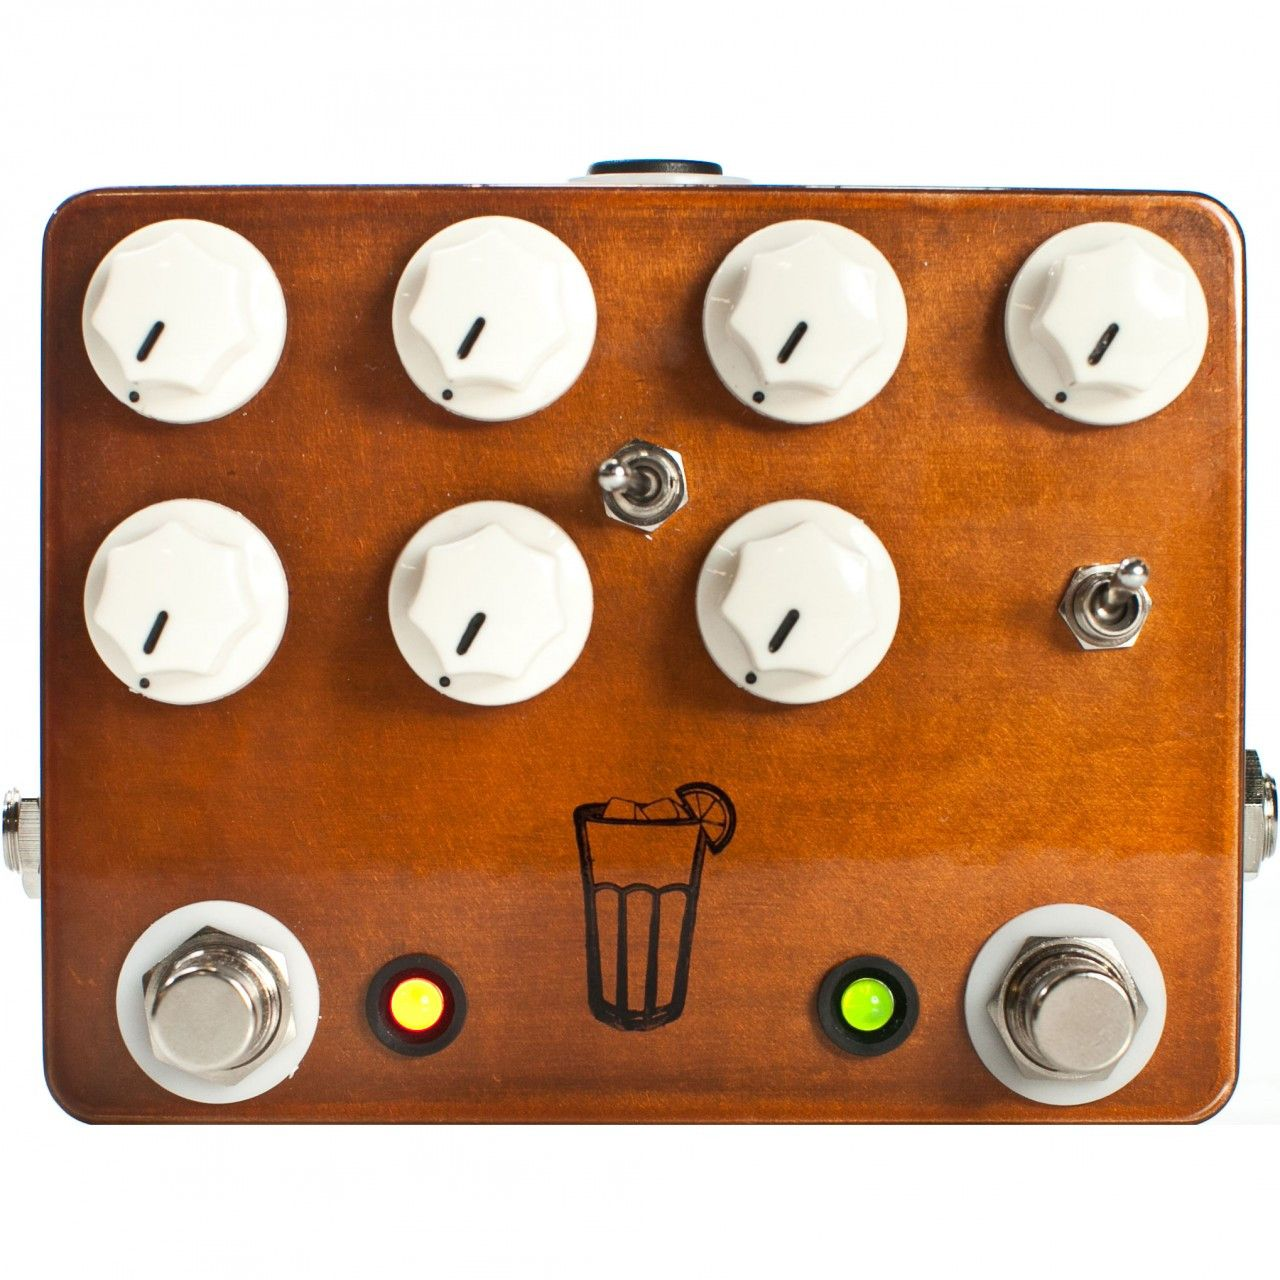 JHS Sweet Tea 2 In 1 Overdrive & Distortion